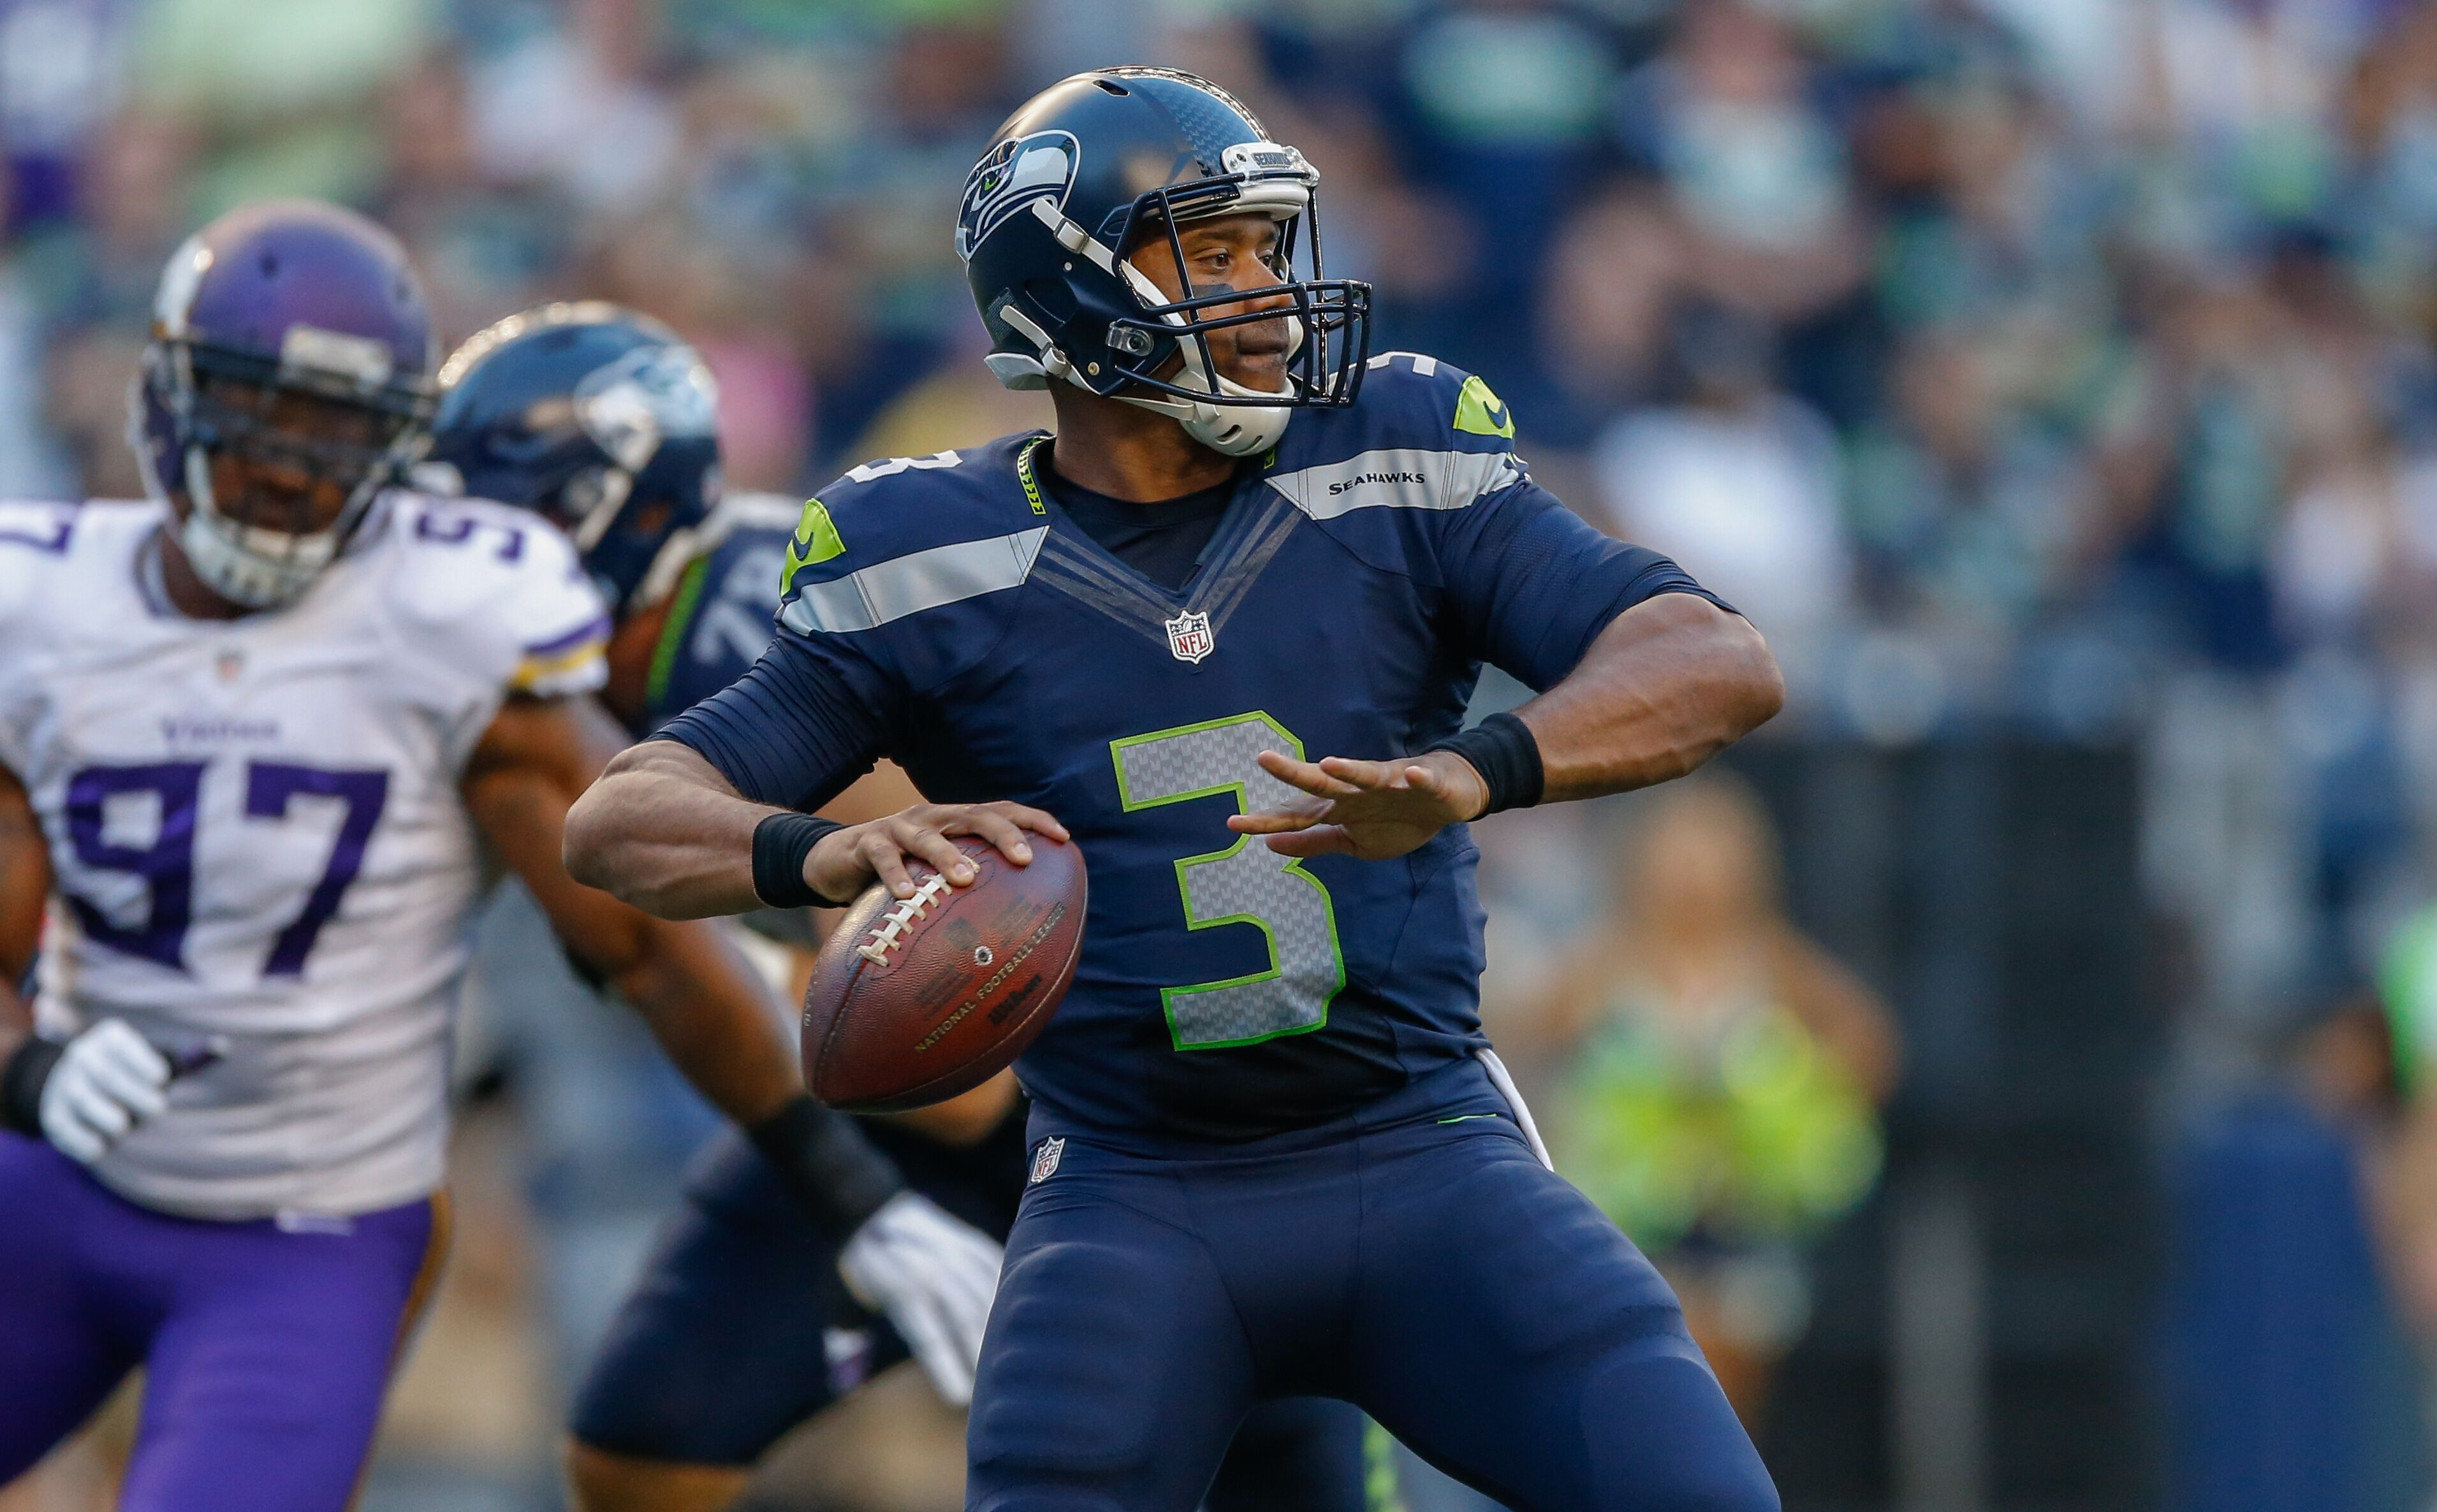 593268390-minnesota-vikings-v-seattle-seahawks.jpg